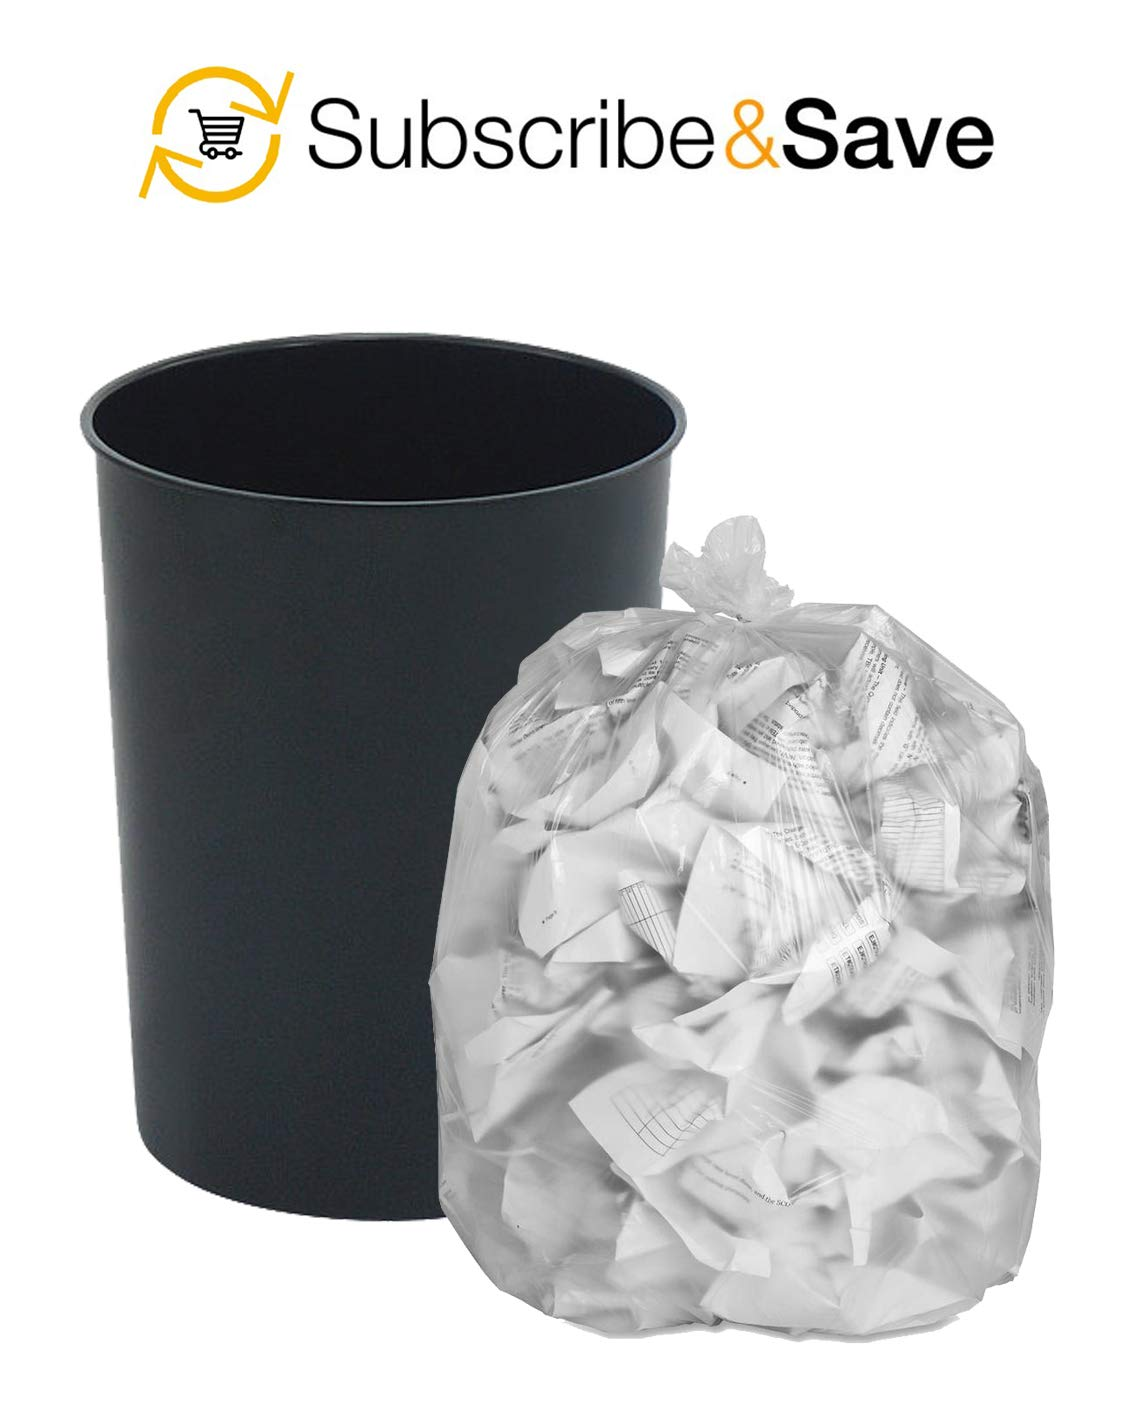 Kitchen APQ Pack of 50 Clear Trash Bags 17 x 18 Tear Resistant Trash Liners for Offices Wholesae Price. High Density Polyethylene Garbage Can Liners 17x18 Schools Thickness 6 Micron